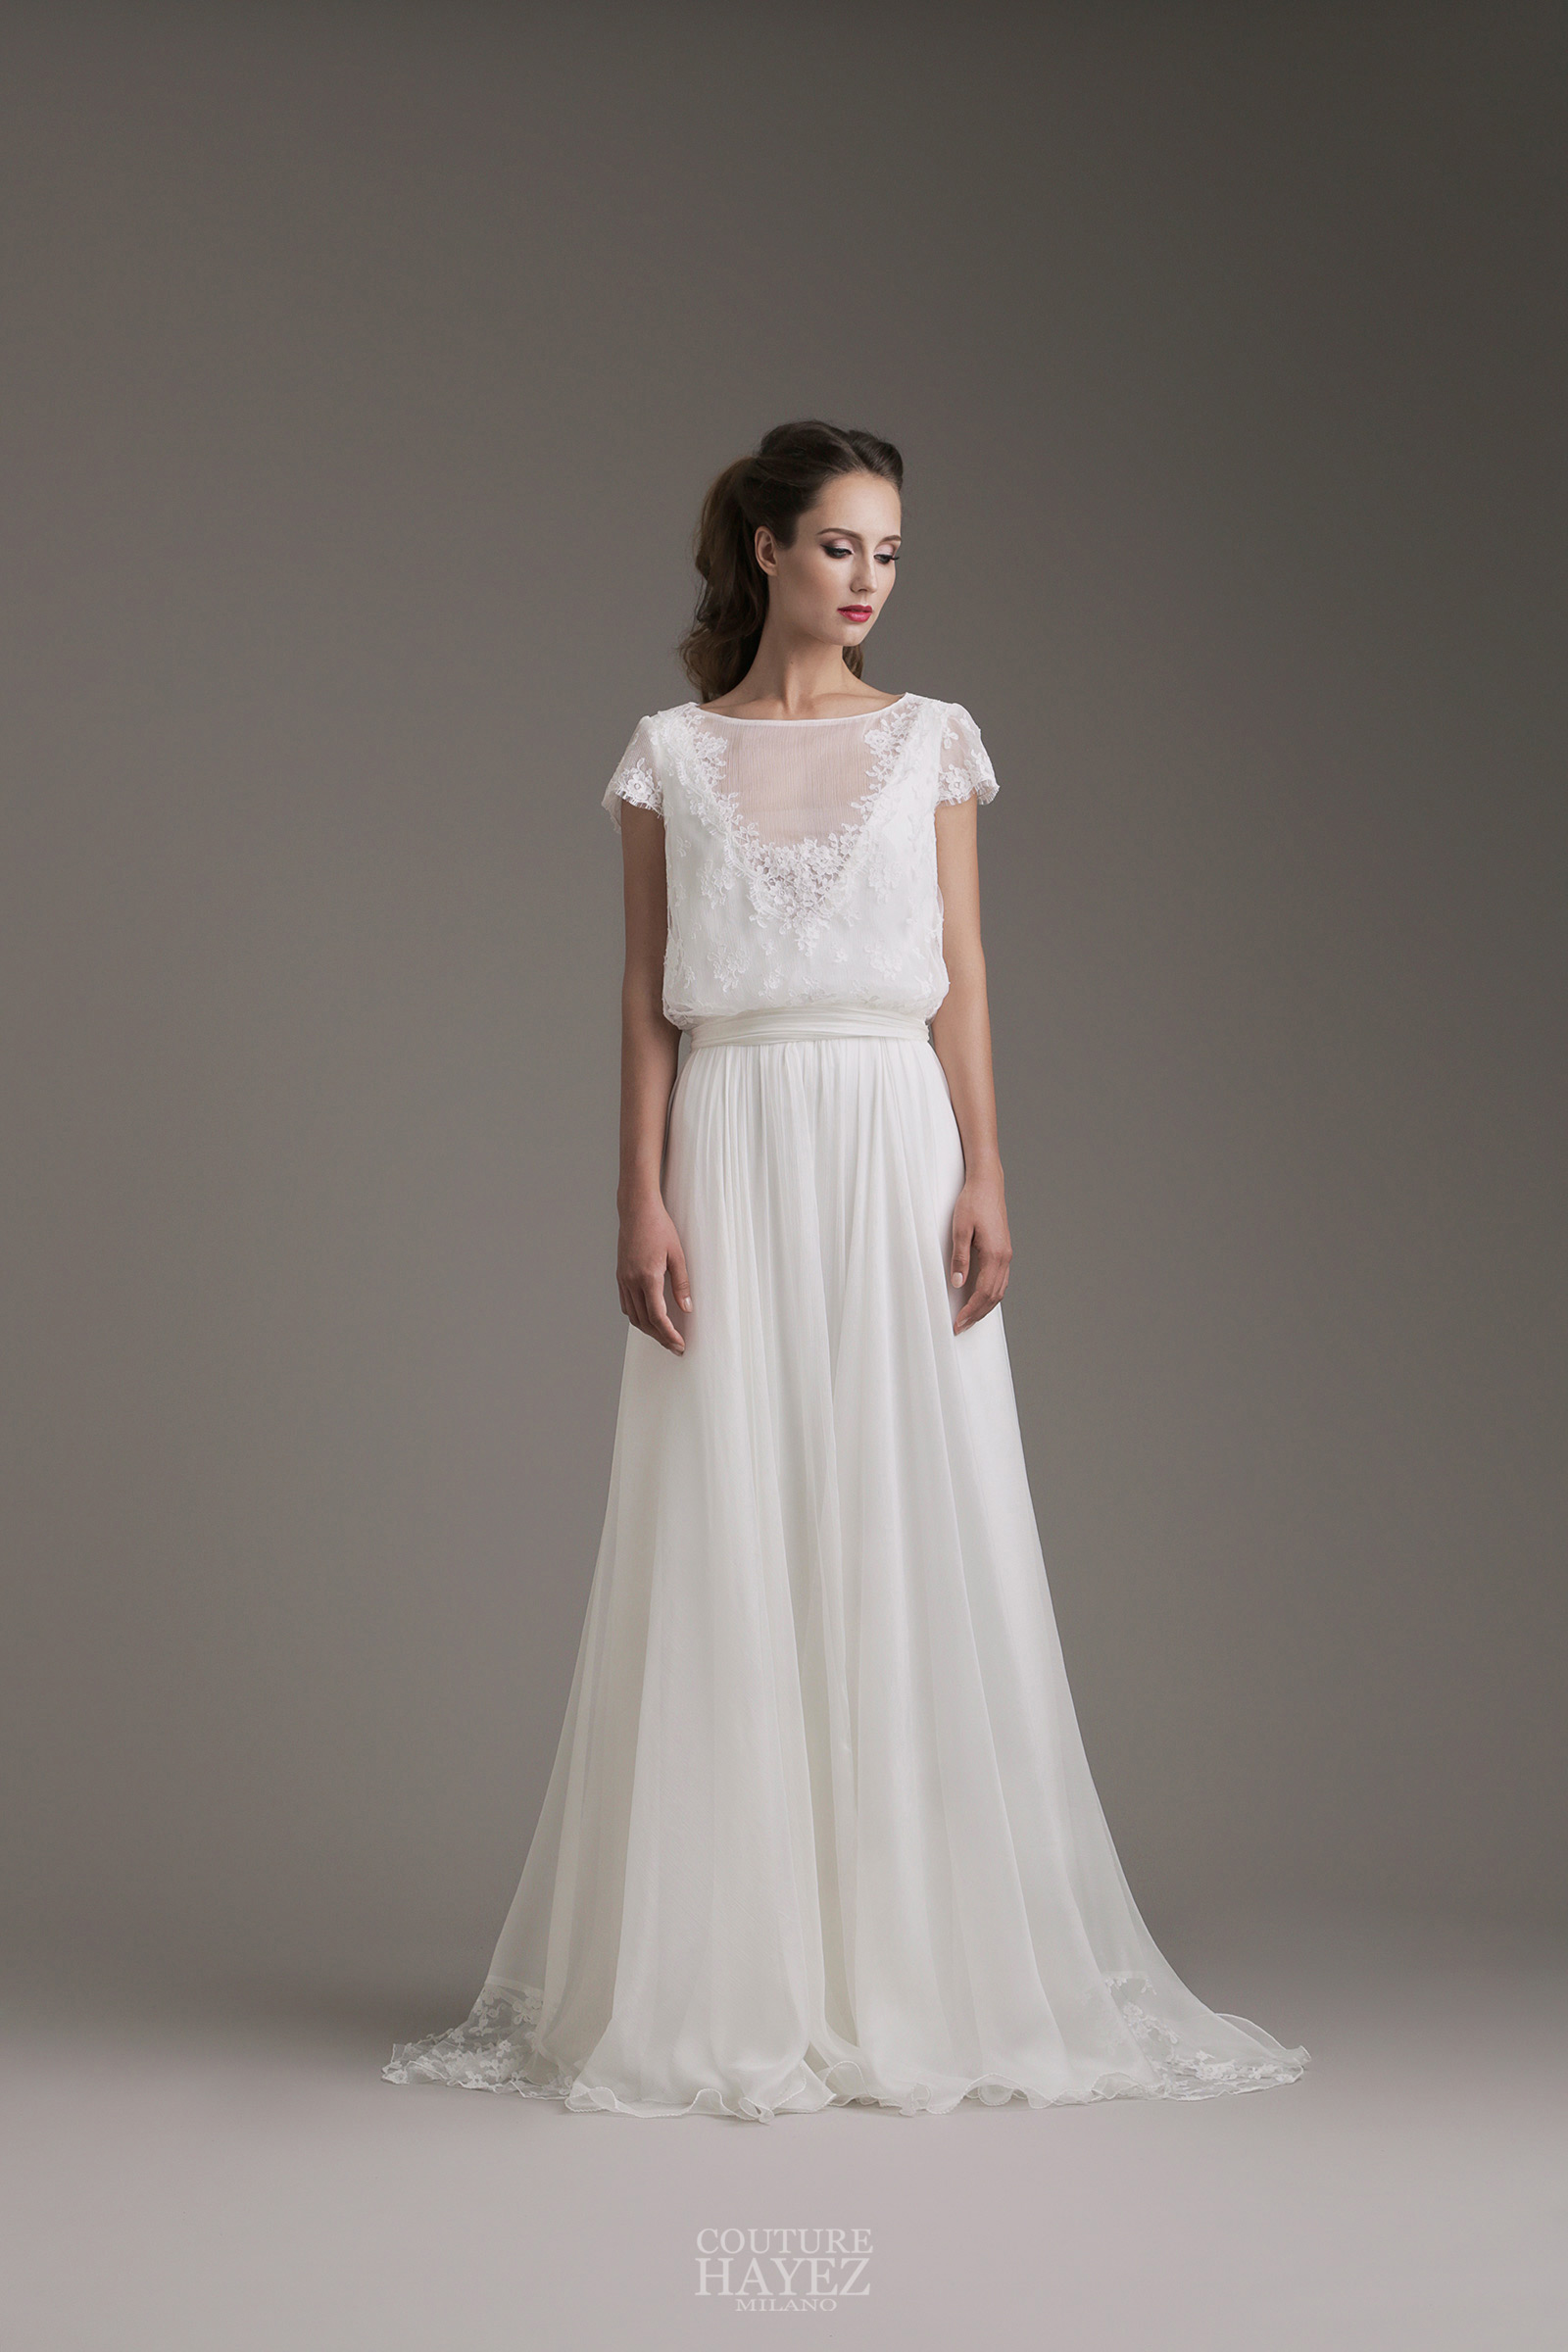 online store c4aa1 6eb29 Kylie: abito sposa in chiffon e pizzo francese